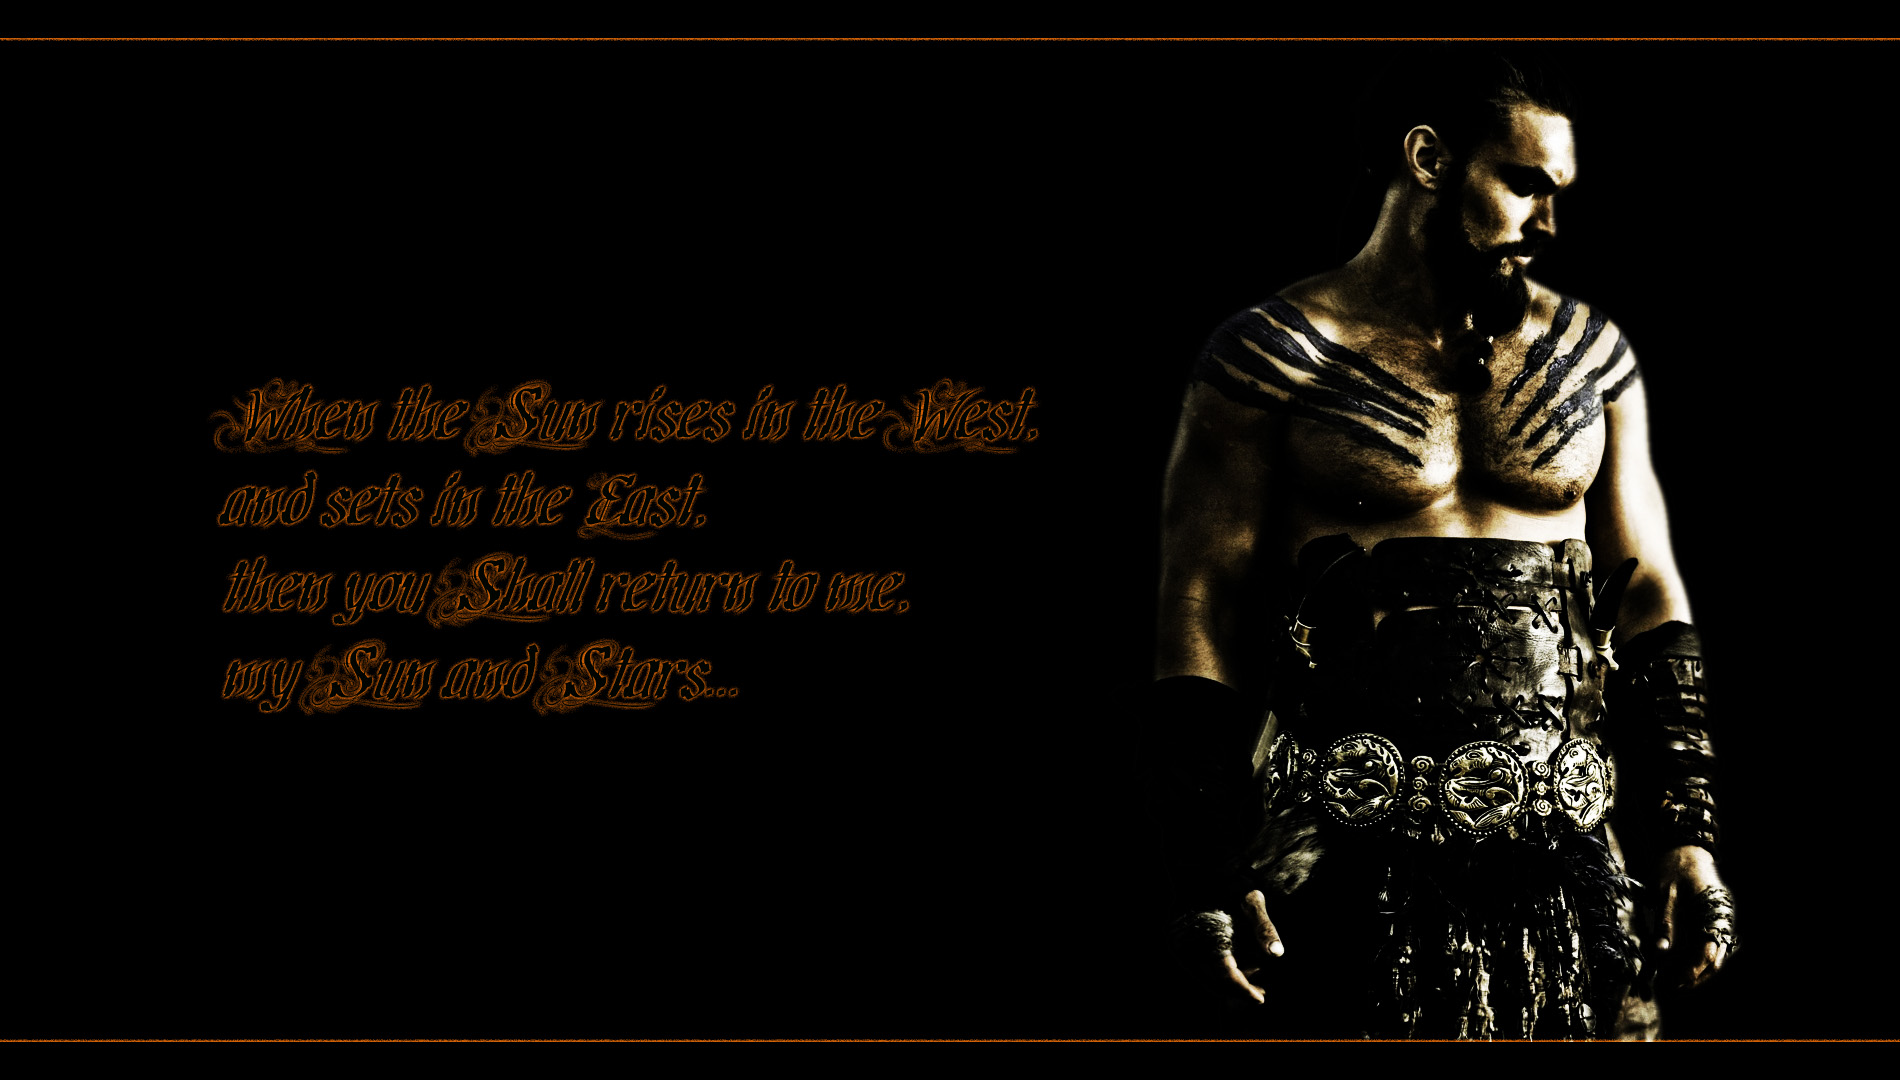 game of thrones drogo quote high resolution wallpaper HD wallpaper 1900x1080